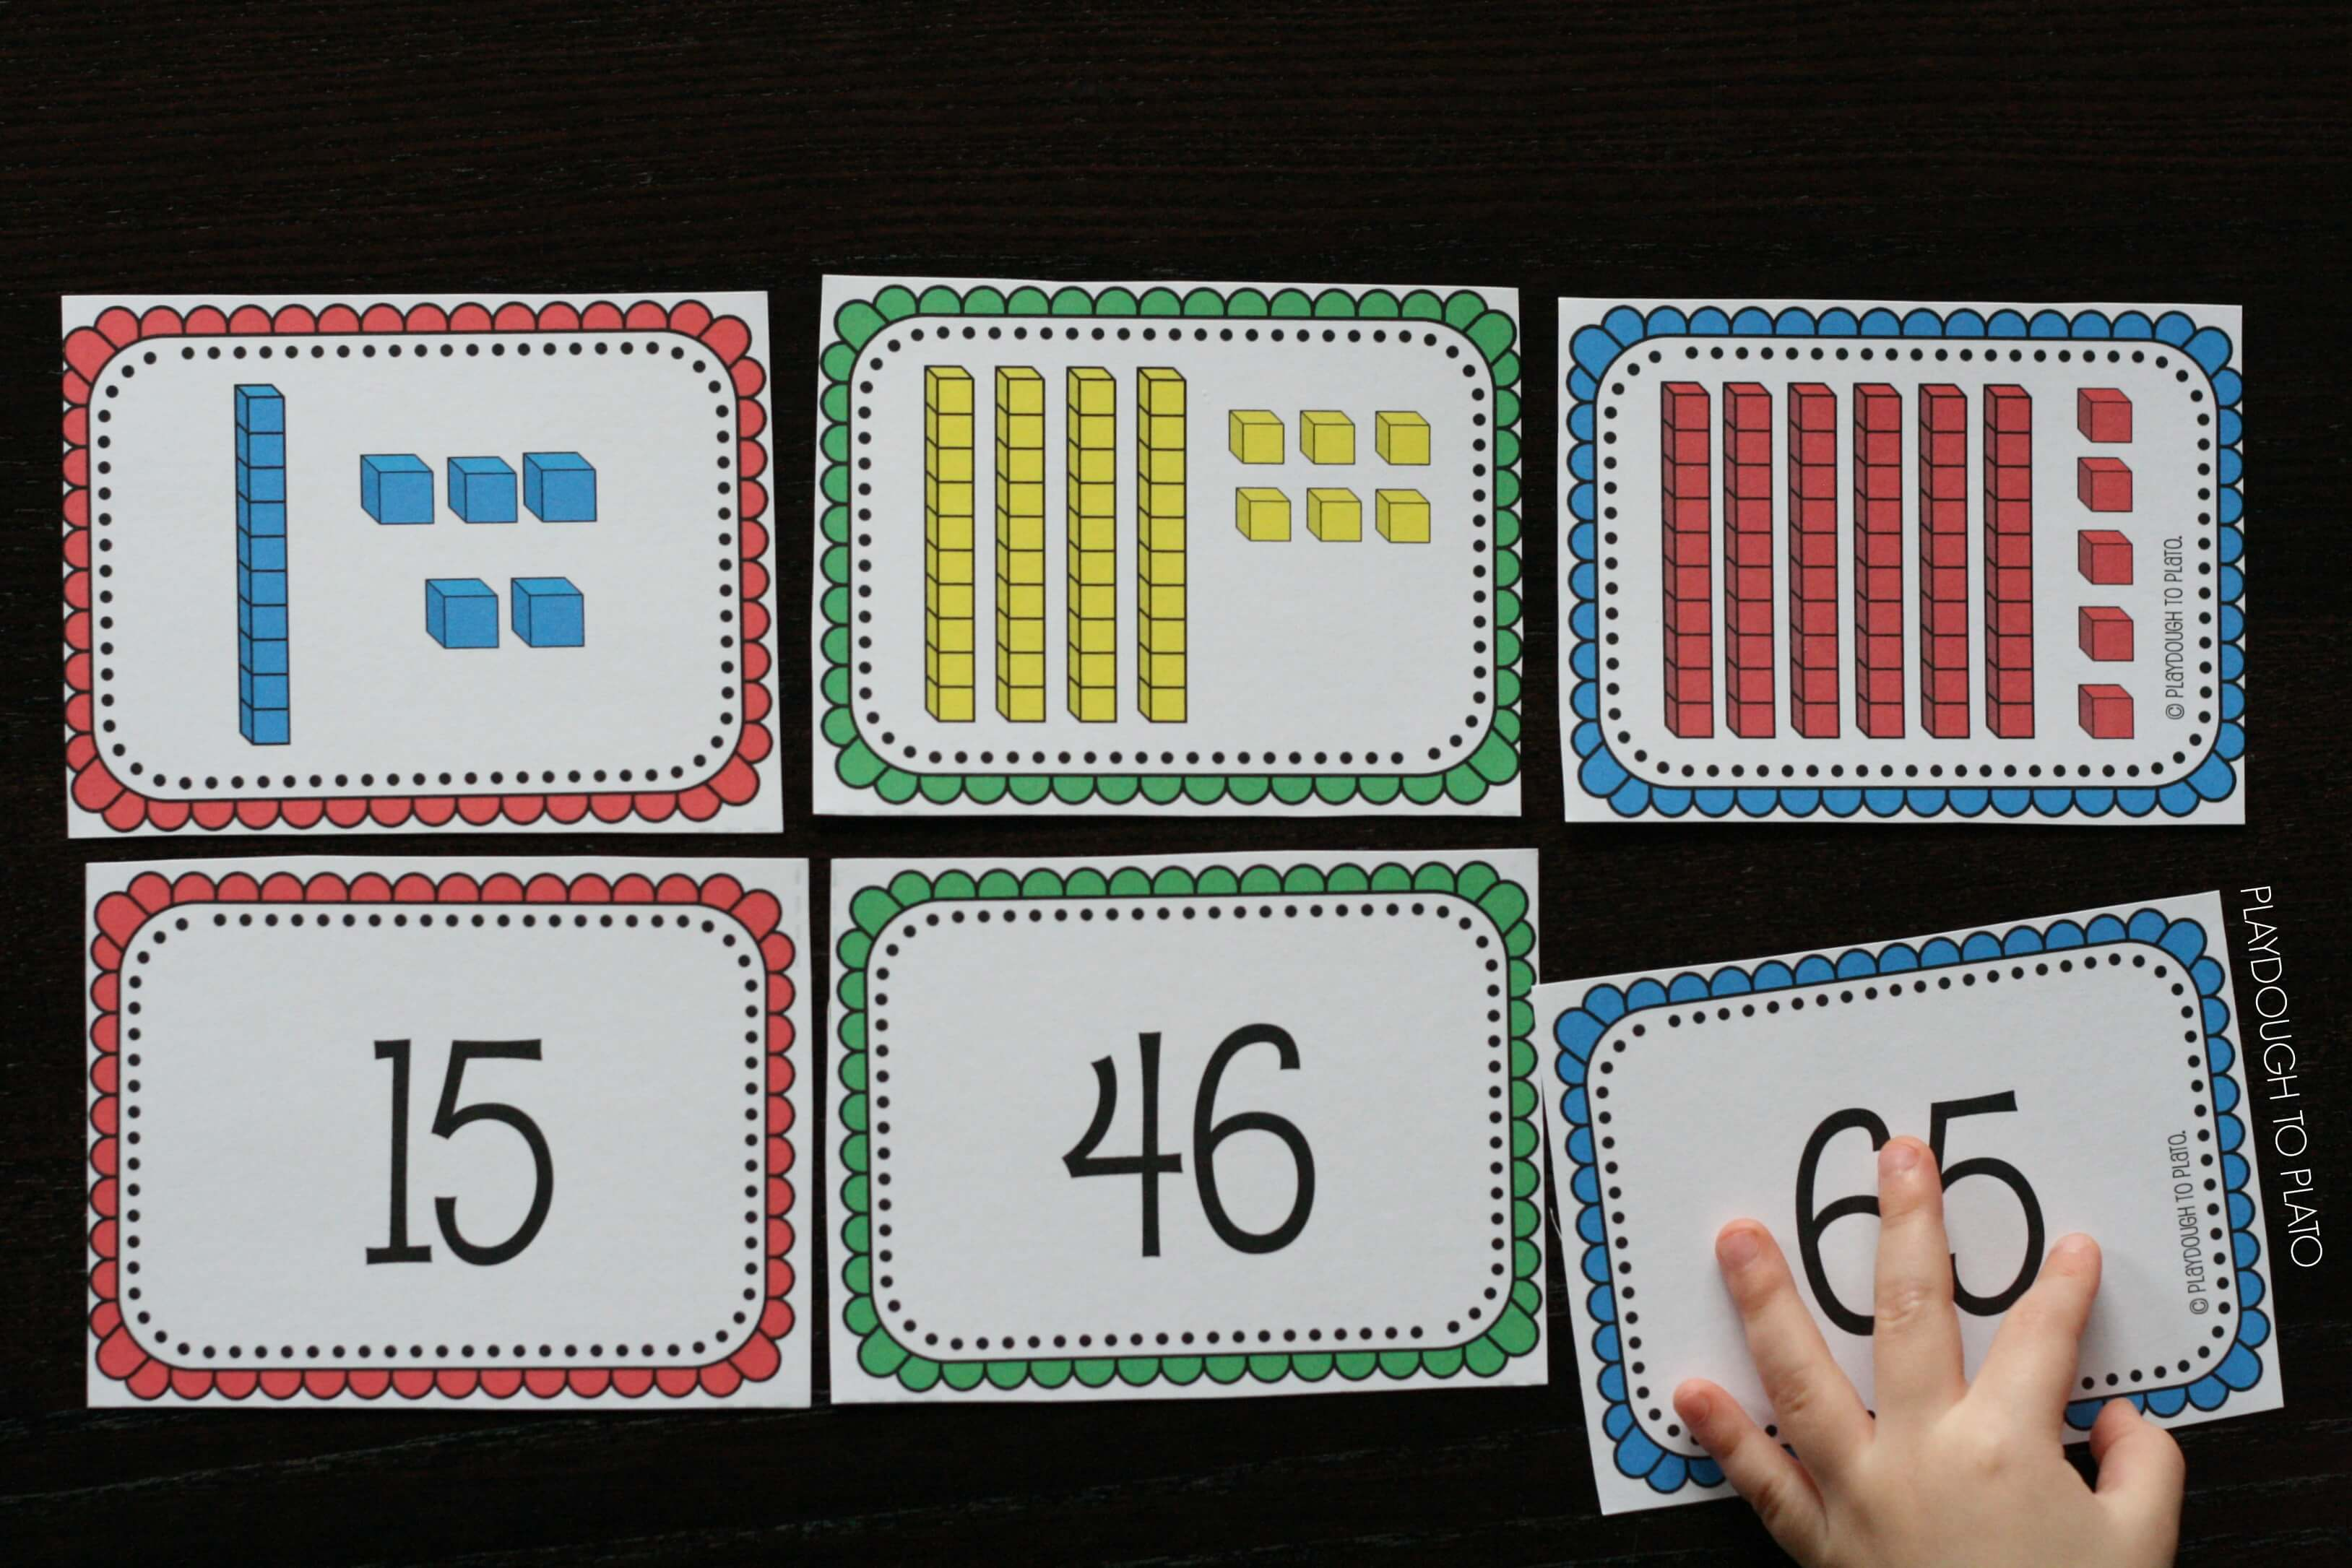 It's just an image of Selective Place Value Games Printable